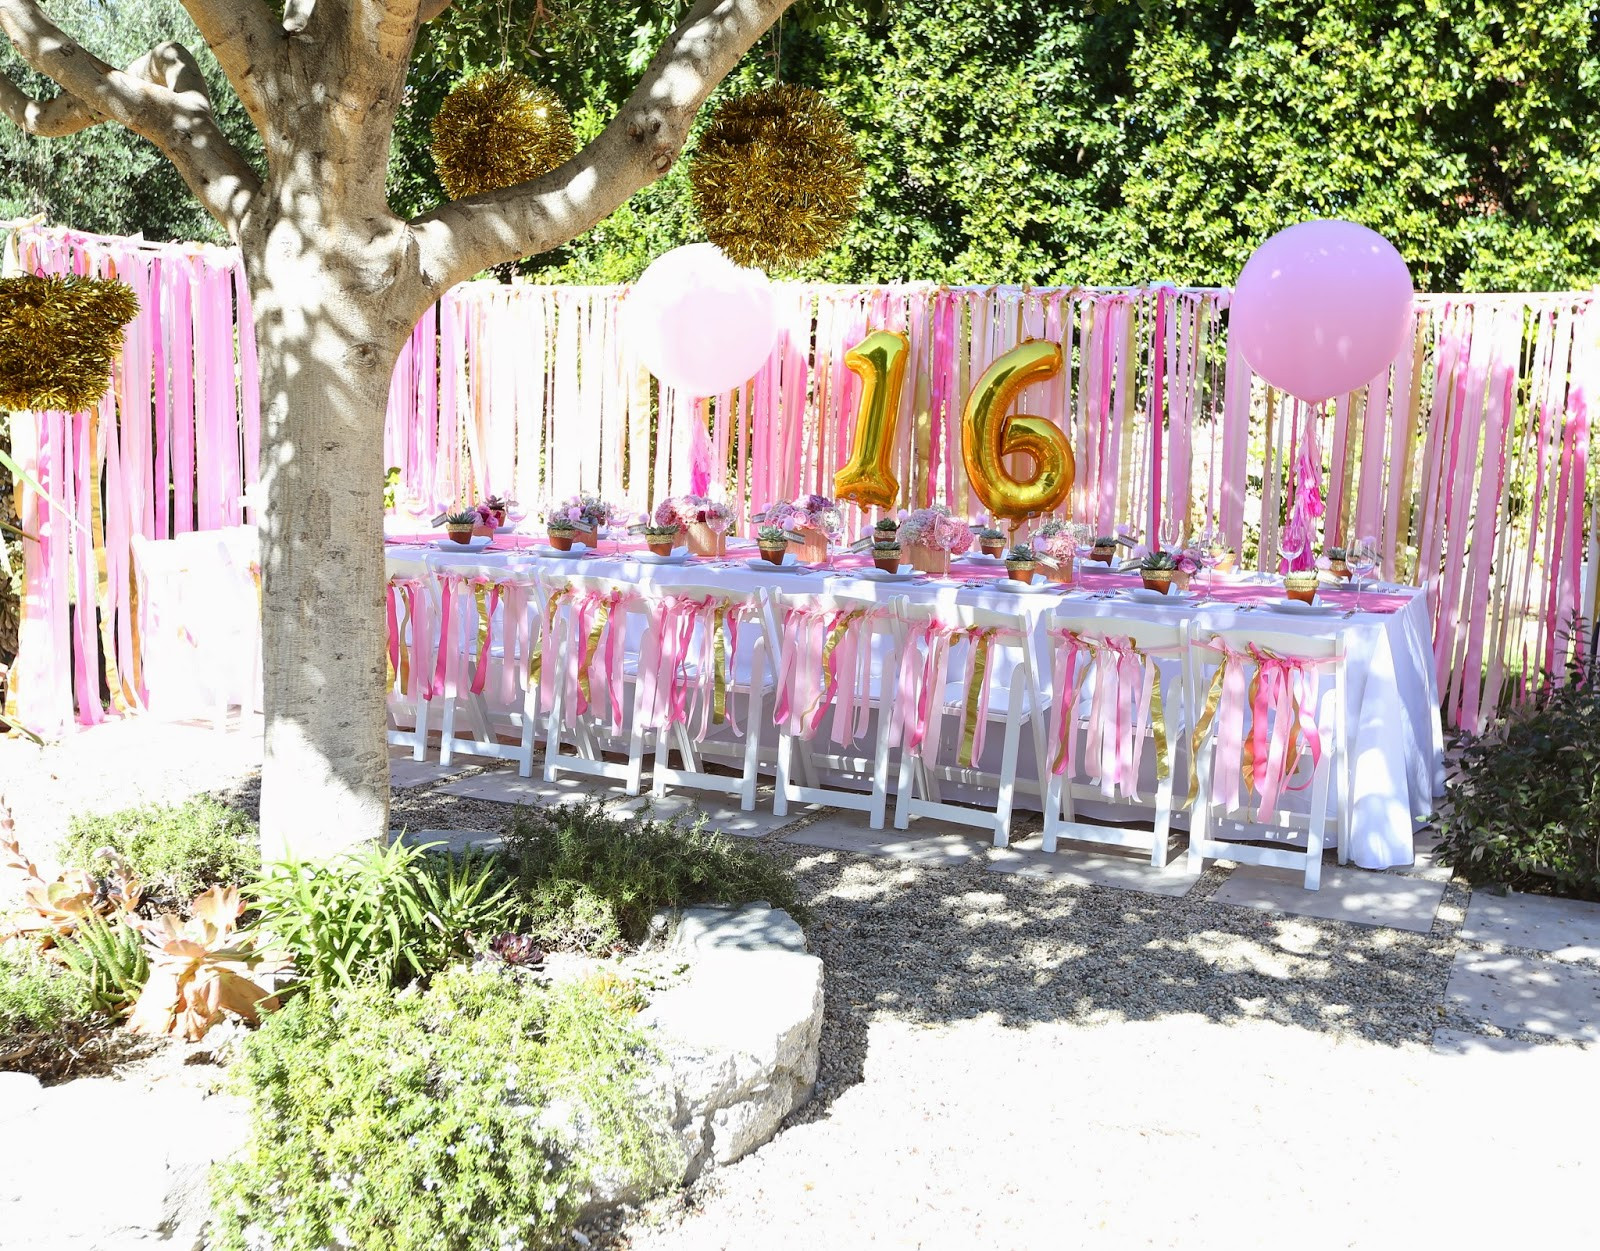 Backyard Birthday Party Ideas Sweet 16  the COOP SWEET 16 Party at Home